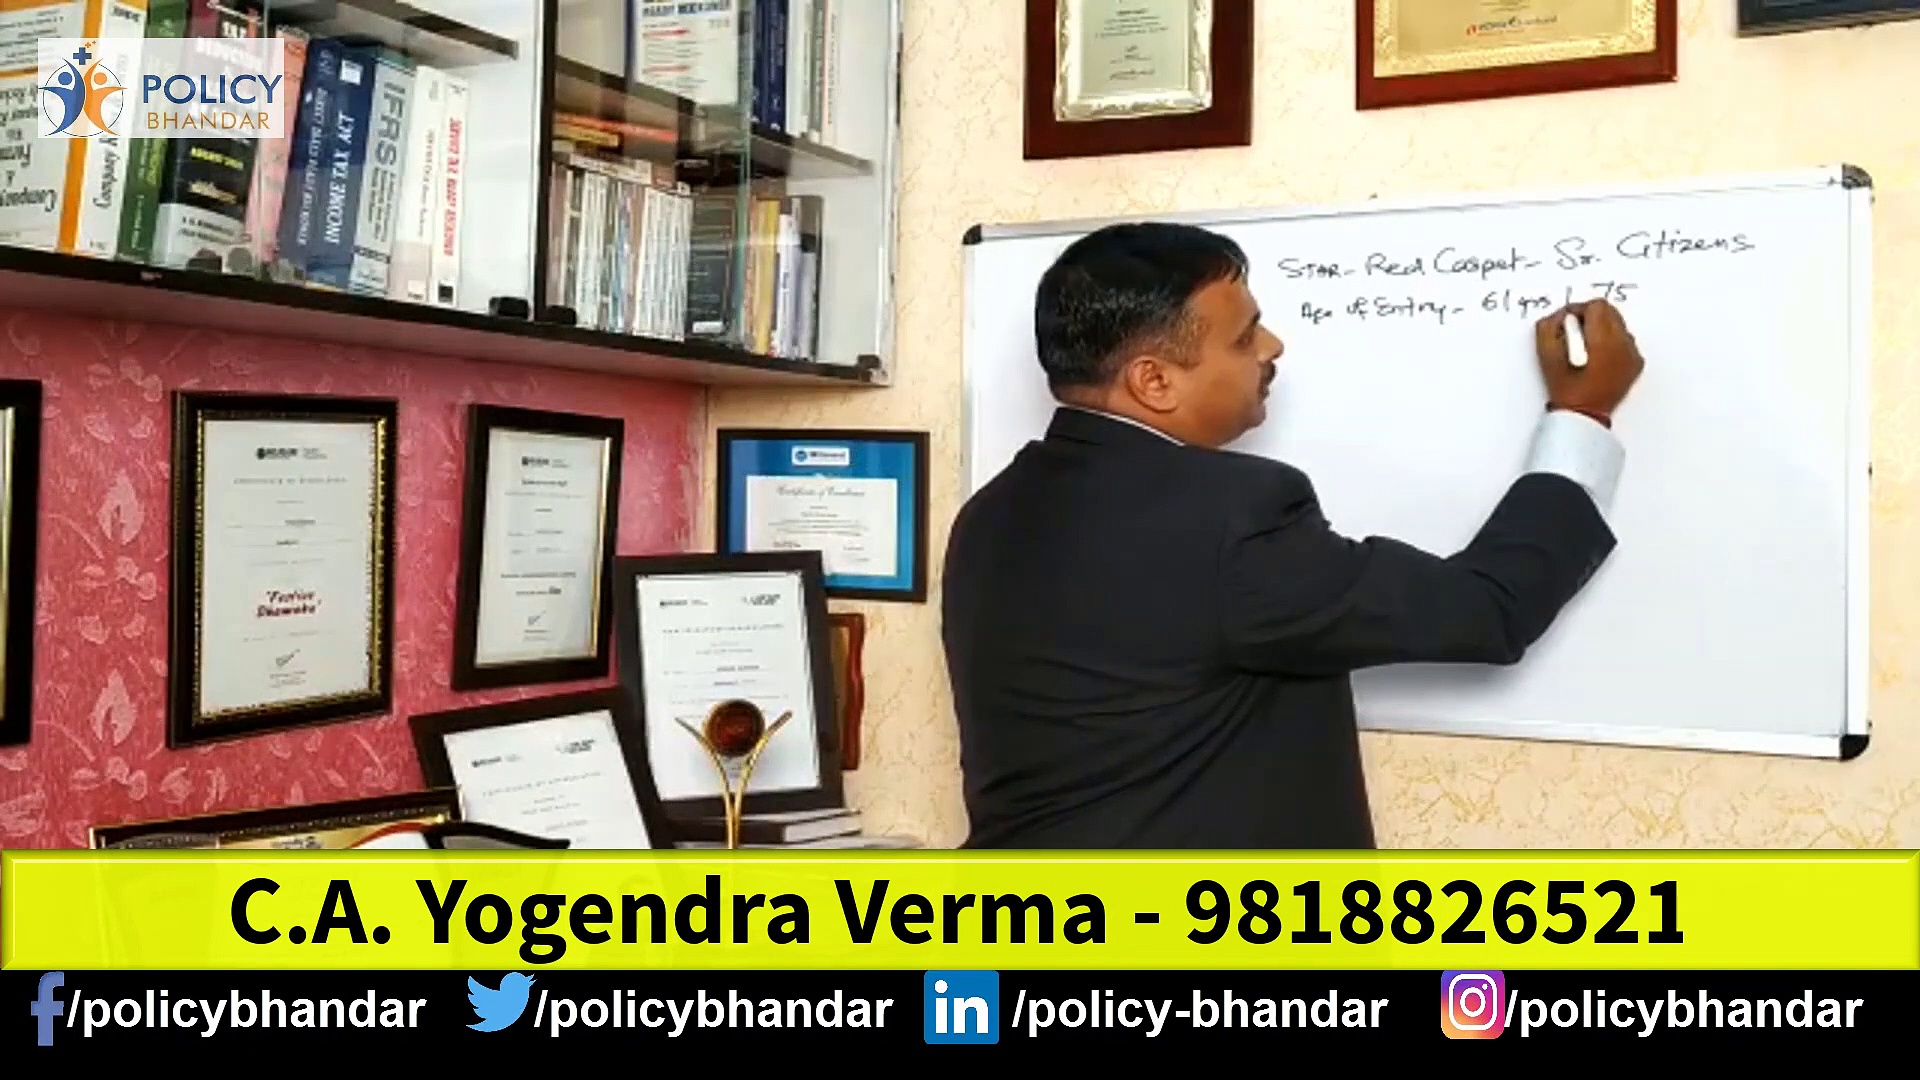 Best Senior Citizen Health Insurance |Red Carpet Star Health Insurance|Yogendra Verma|Policy Bhandar